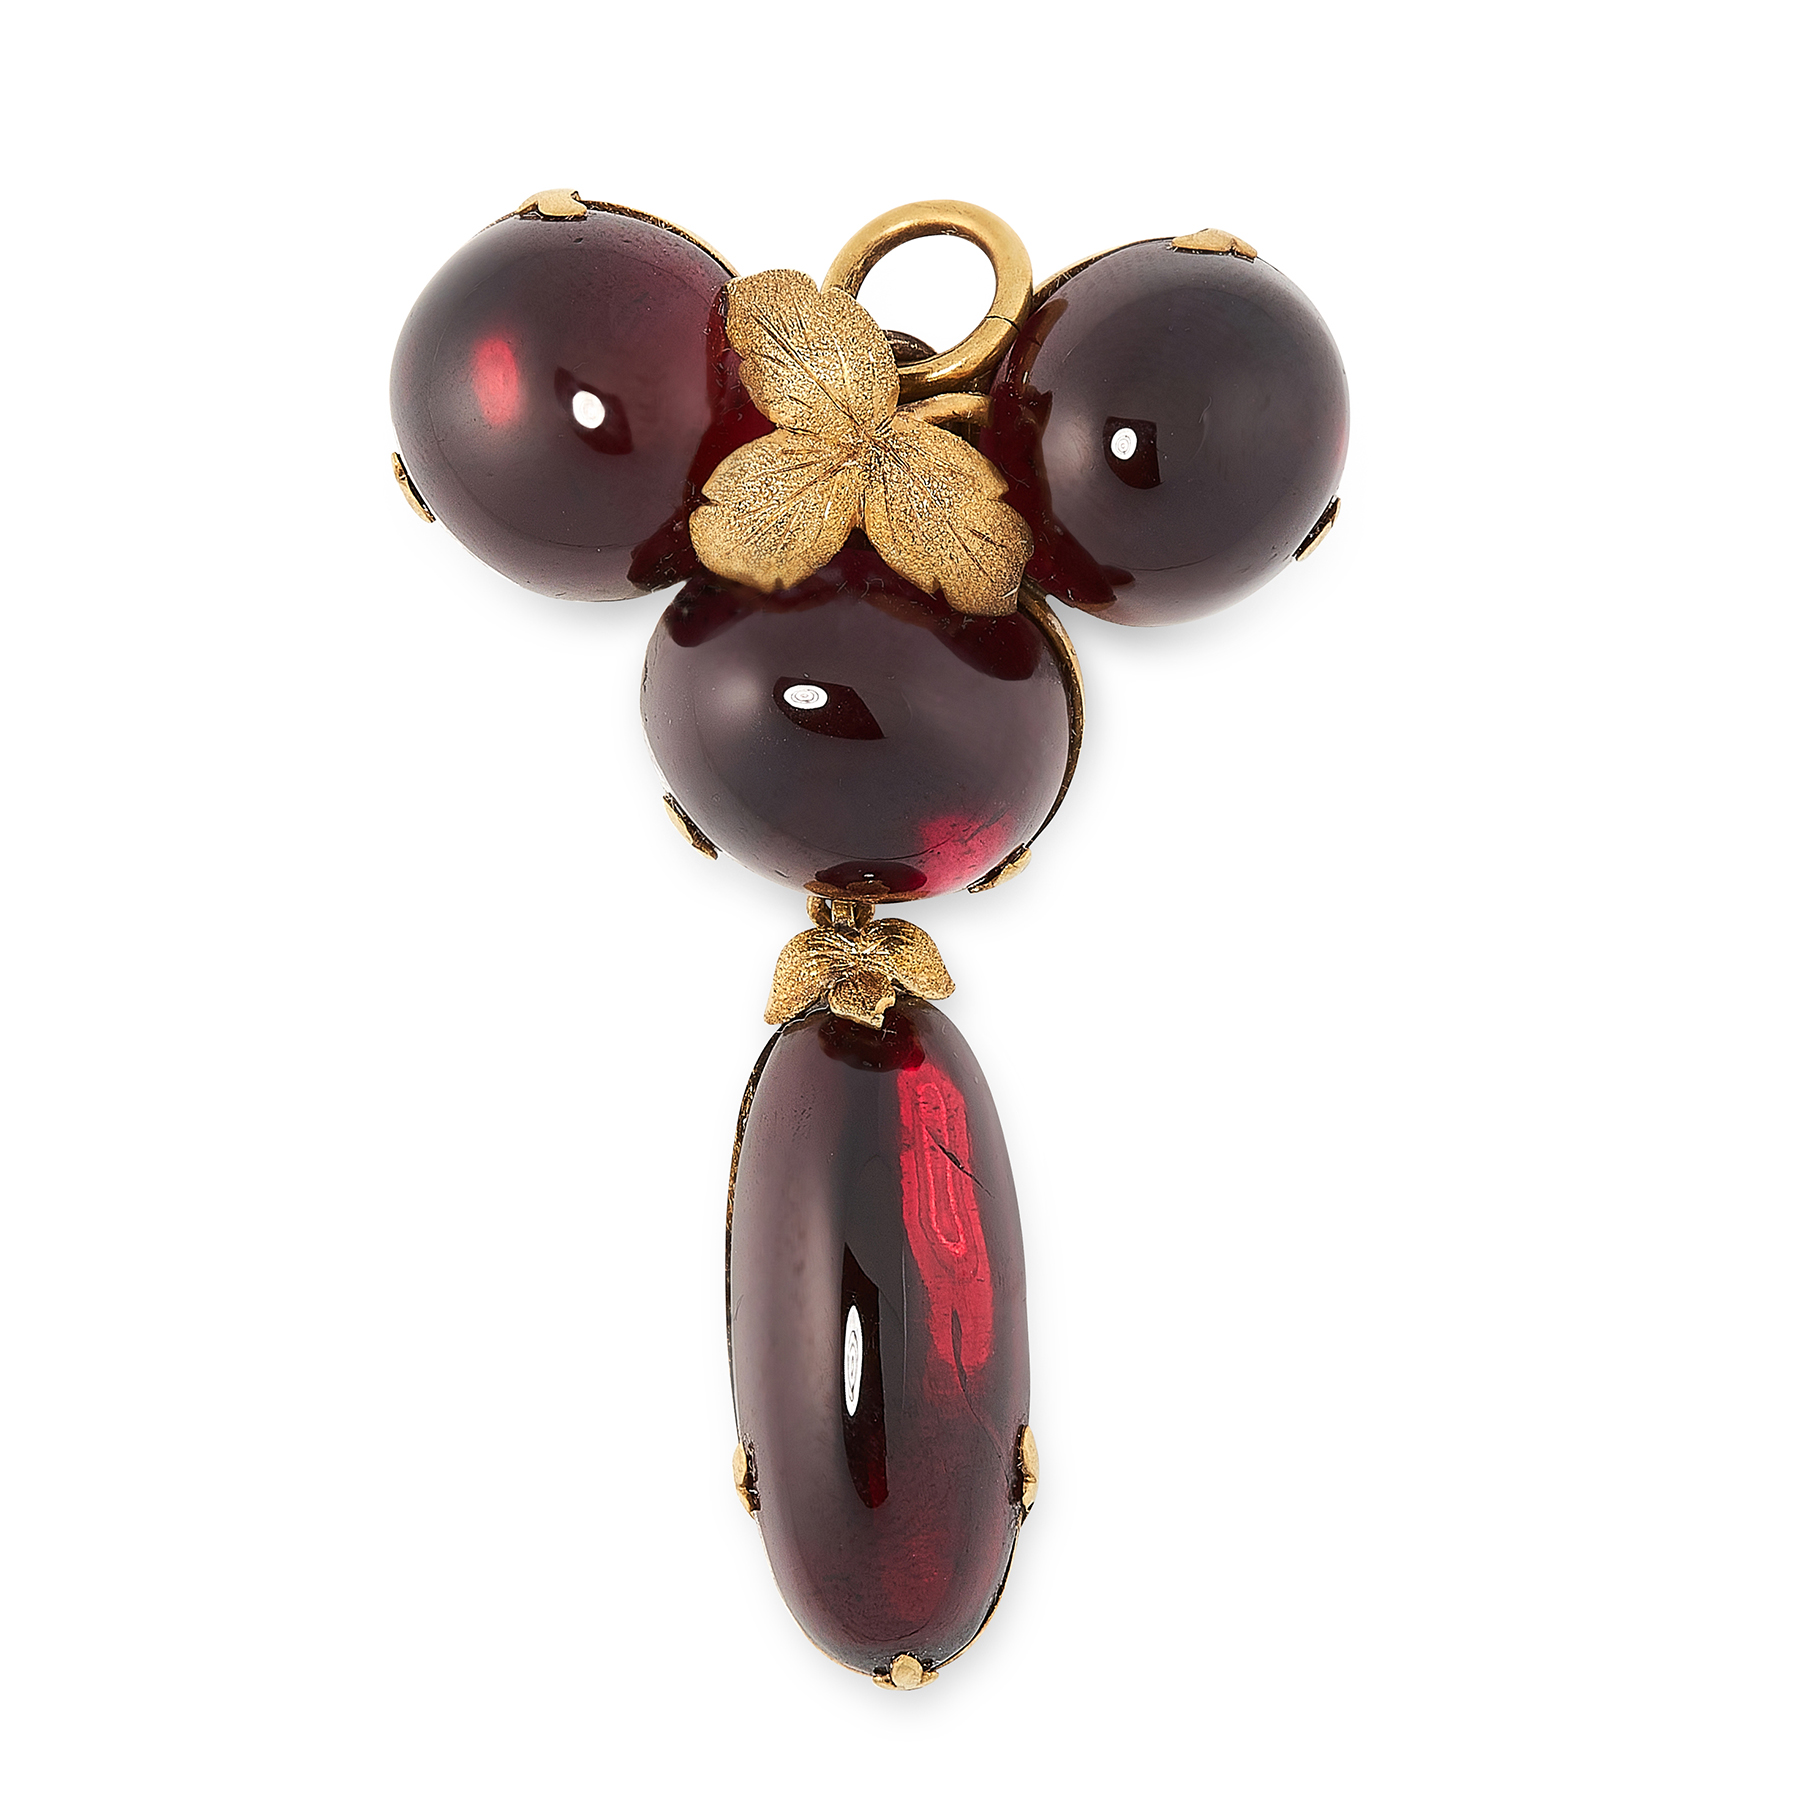 AN ANTIQUE GARNET MOURNING LOCKET BROOCH / PENDANT, 19TH CENTURY in high carat yellow gold, set with